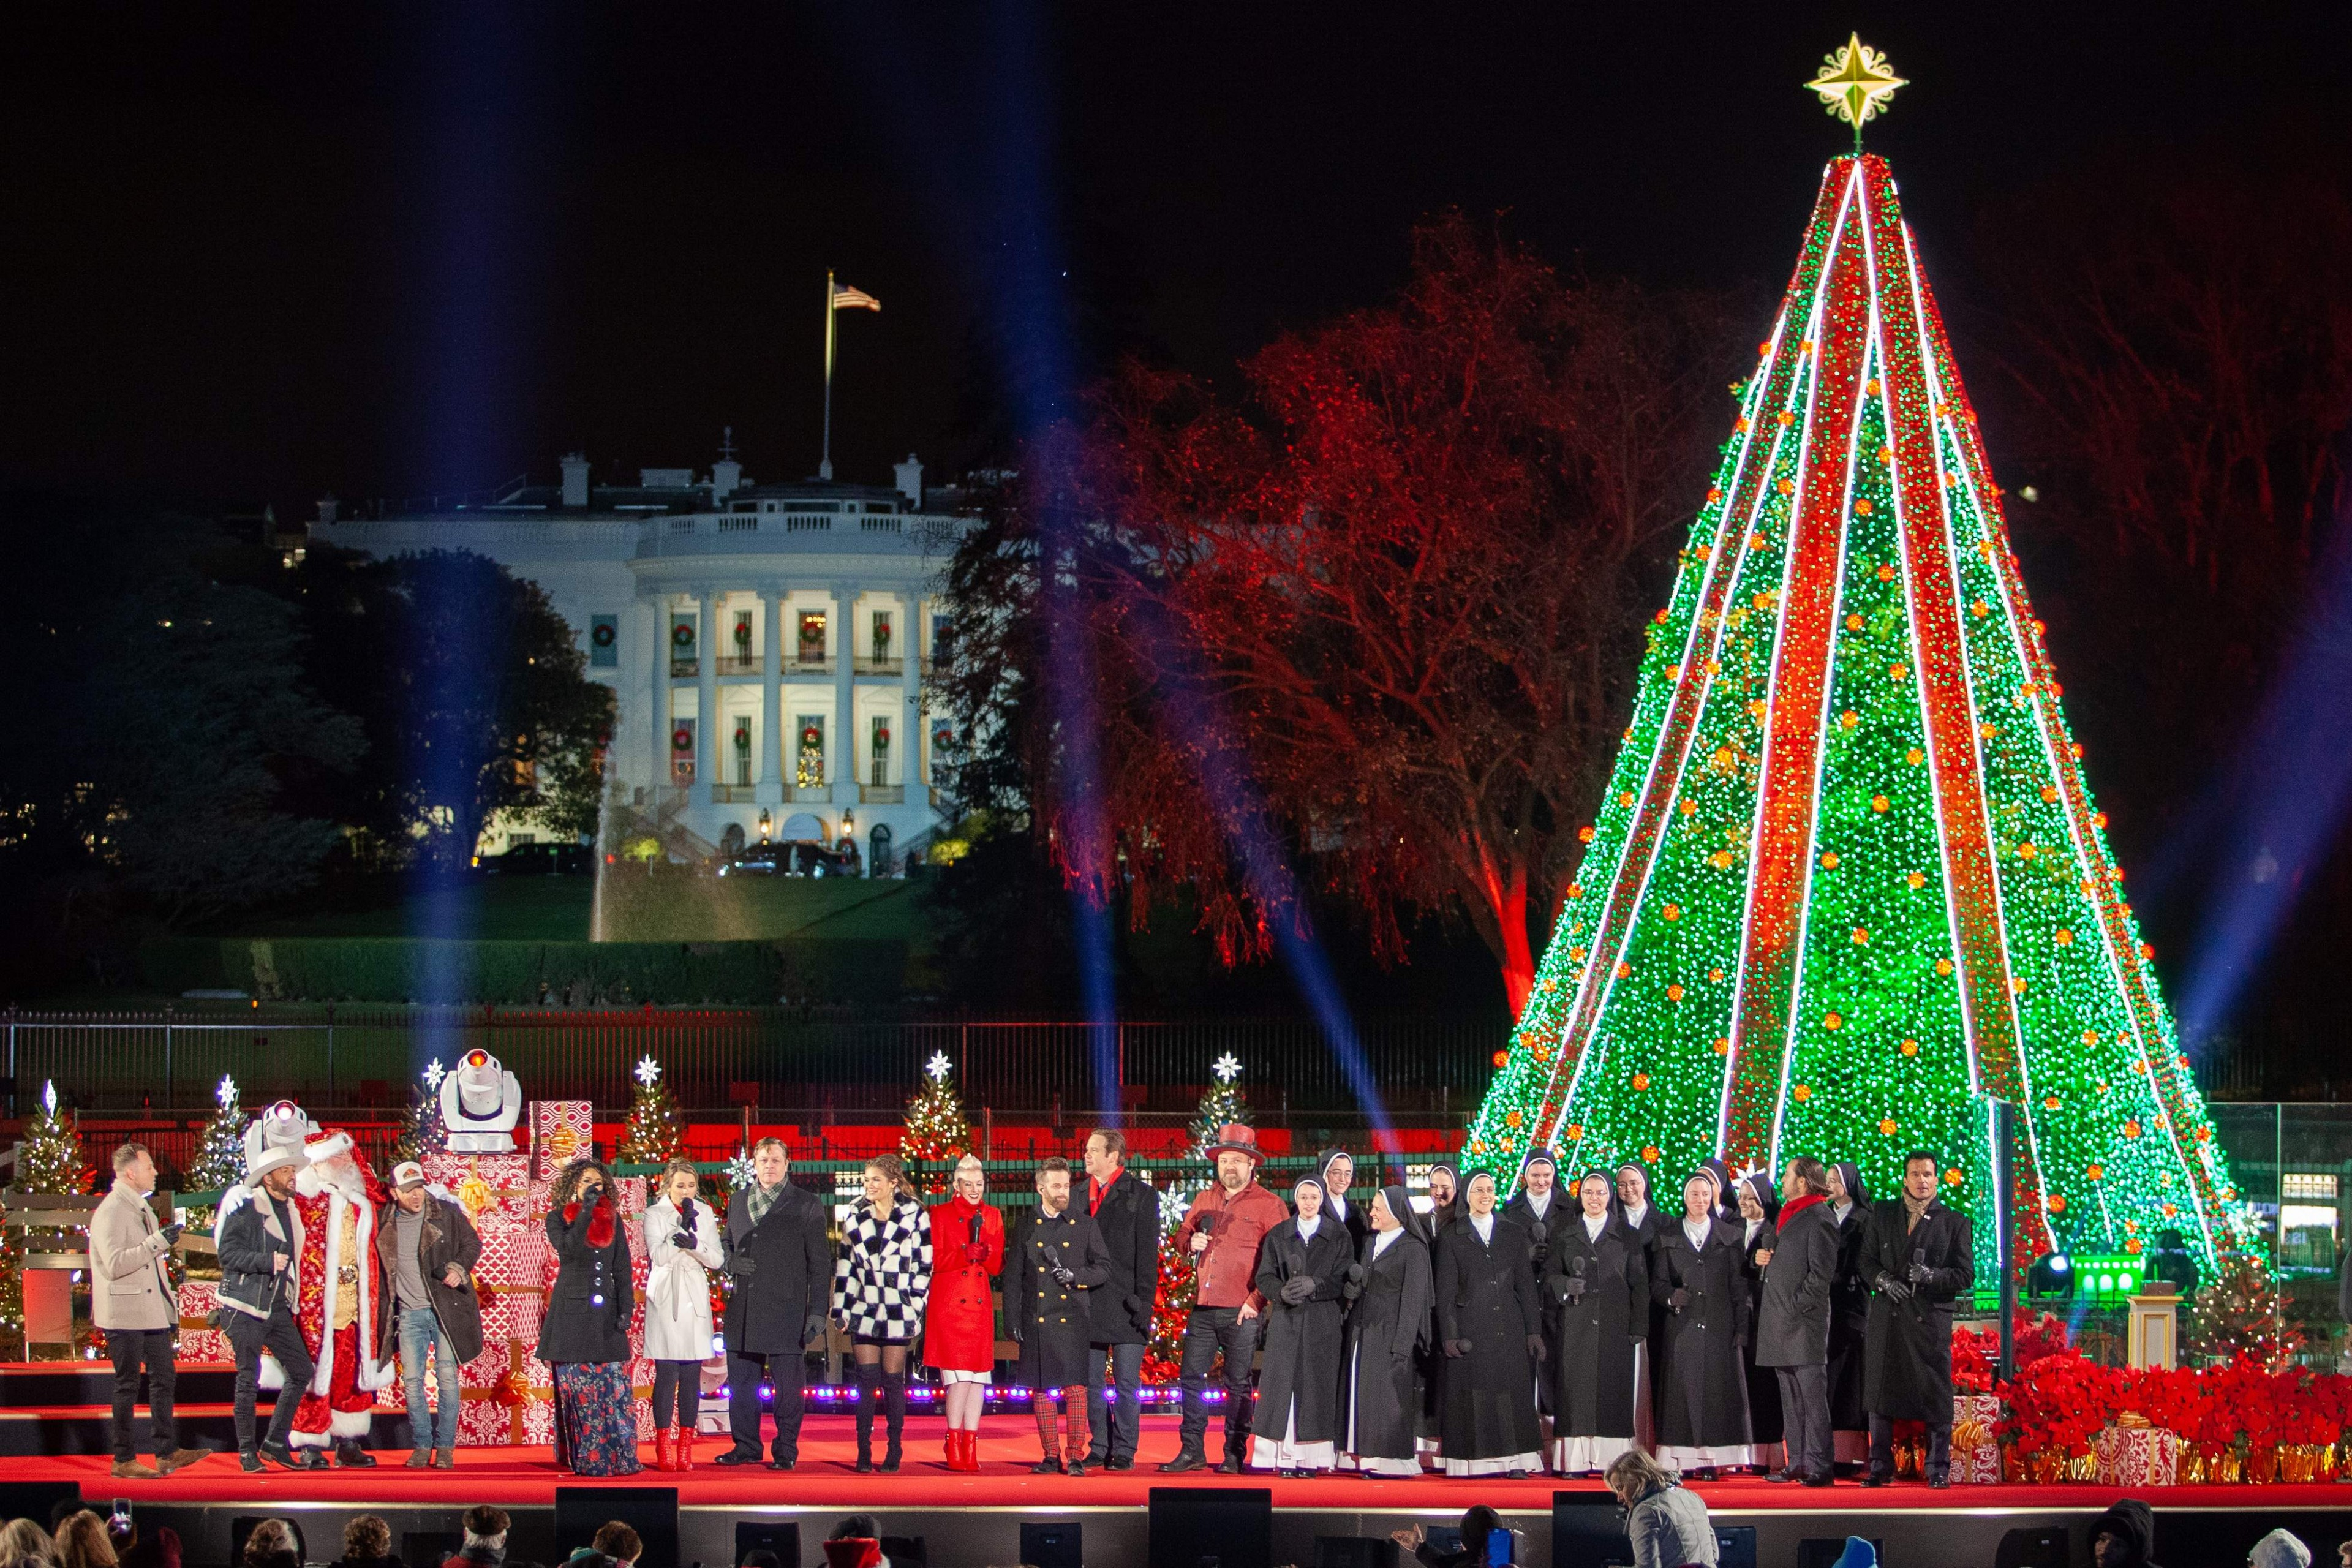 96th Annual National Christmas Tree Lighting | U.S. Department of the Interior